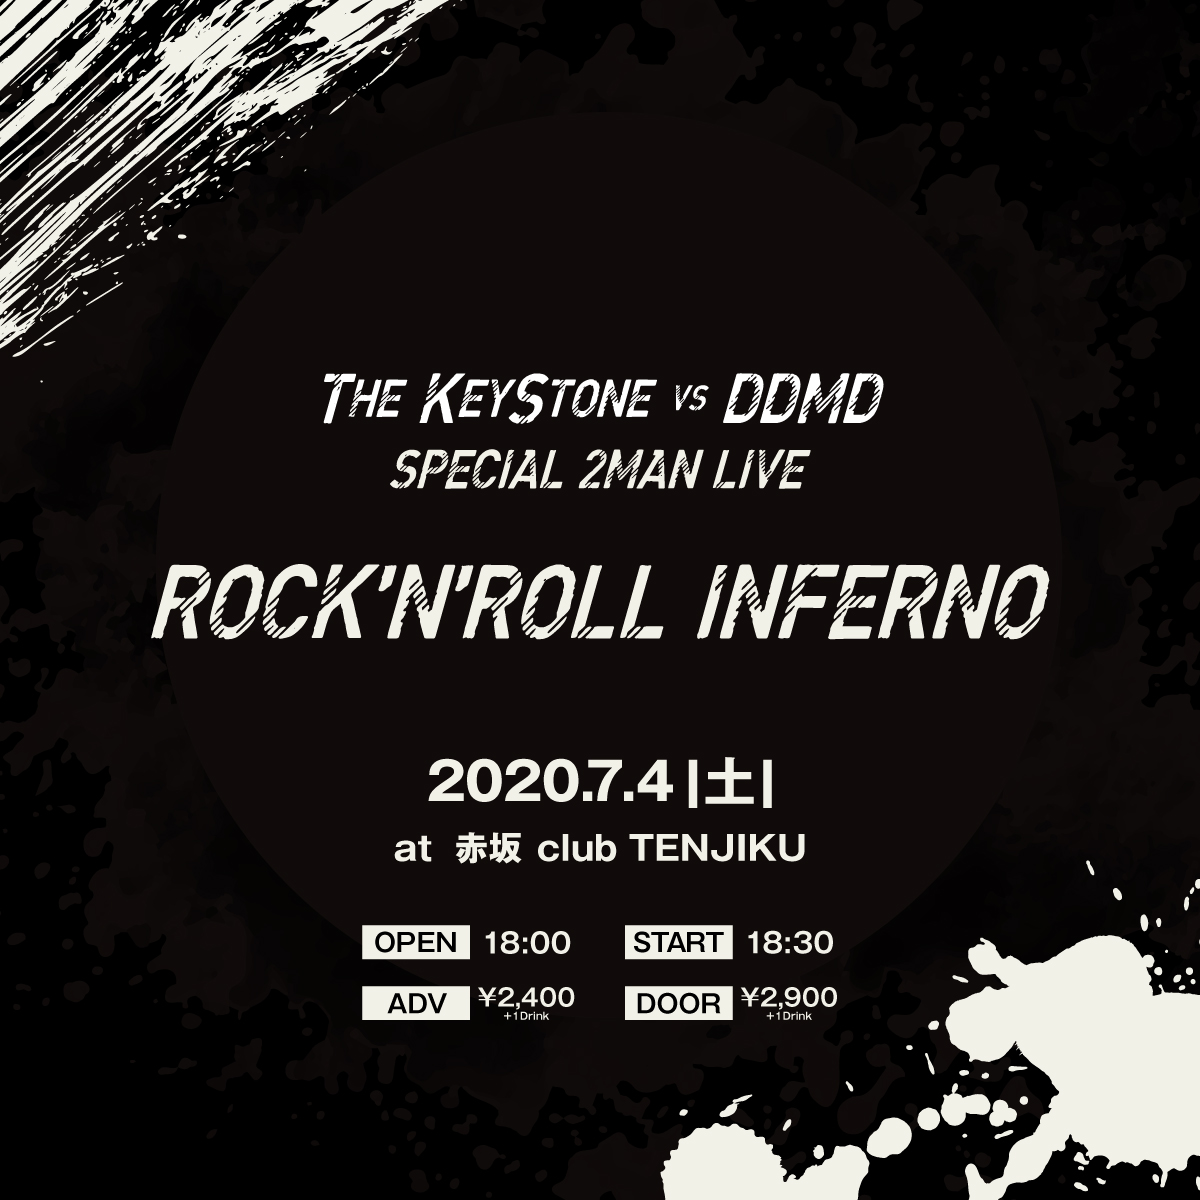 "The KeyStone vs DDMD ""ROCK'N'ROLL INFERNO""の写真"